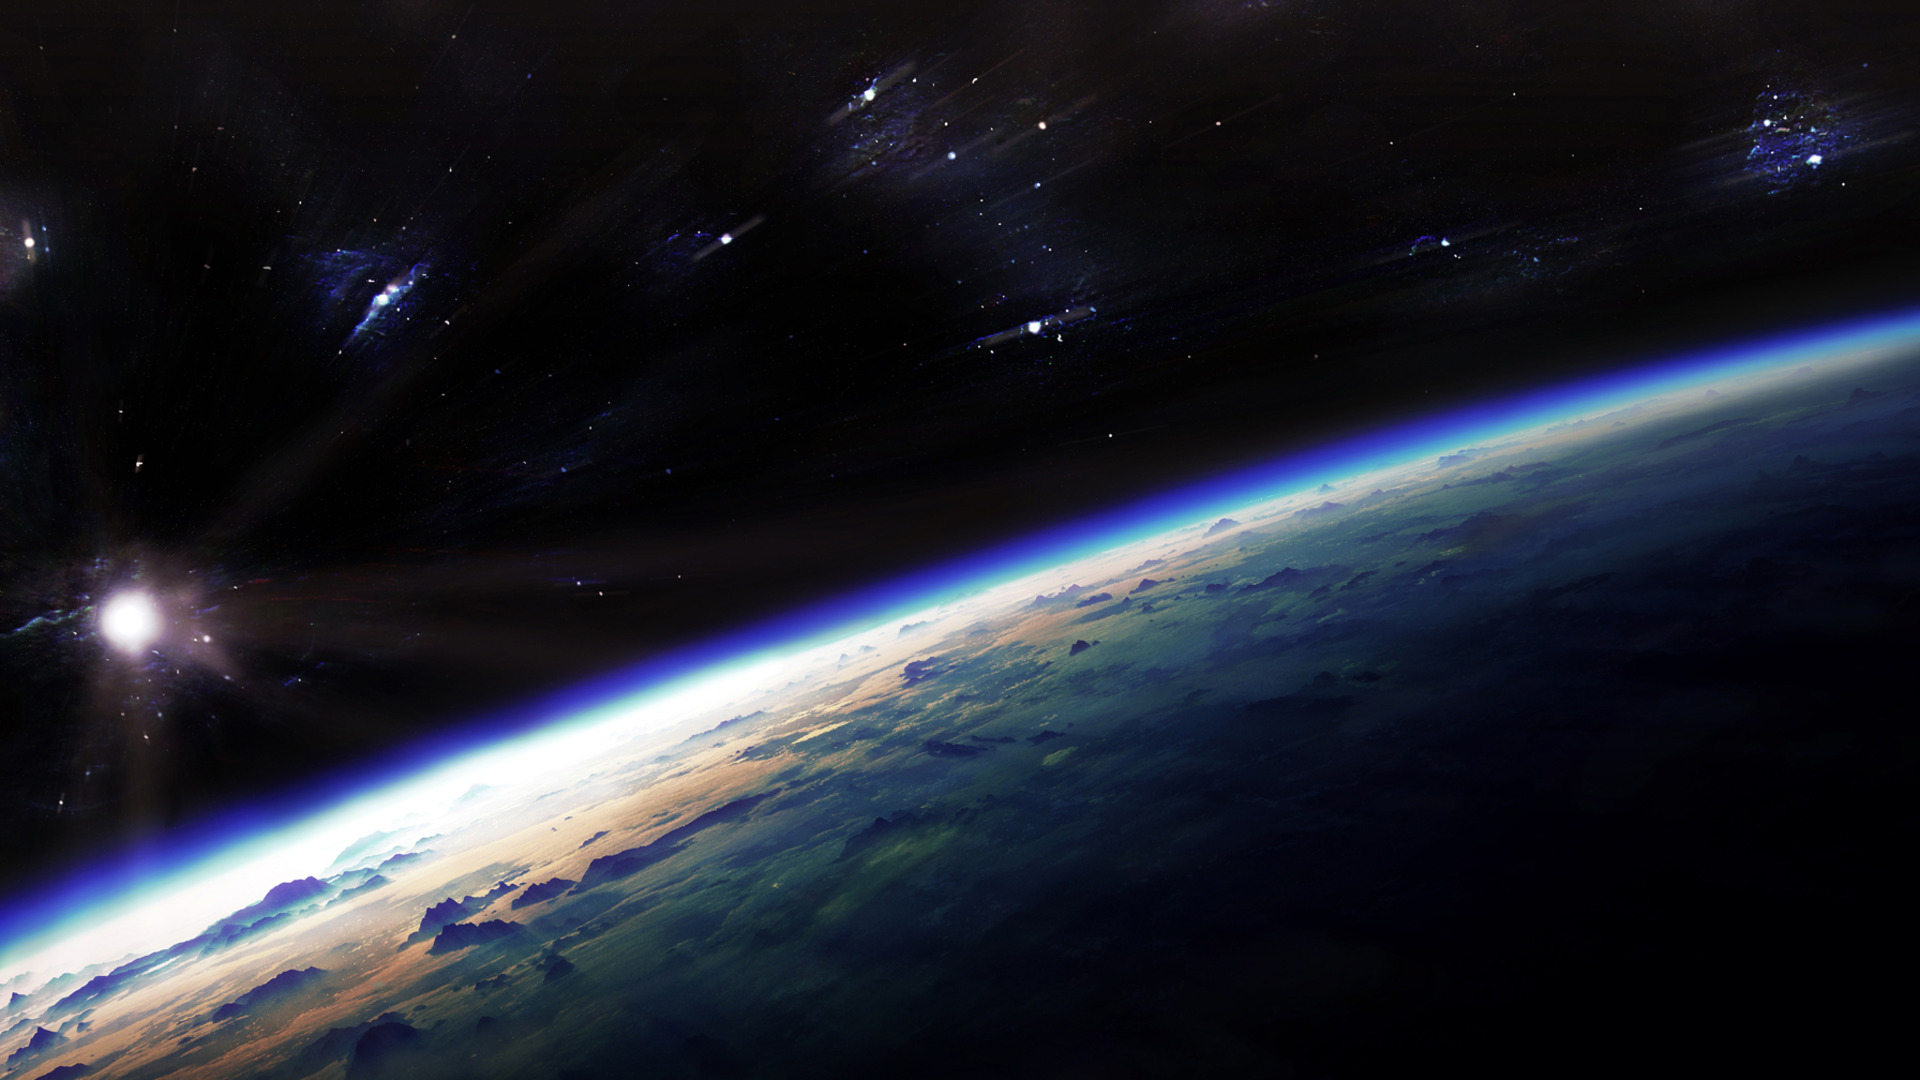 earth from space 00224720jpg 1920x1080